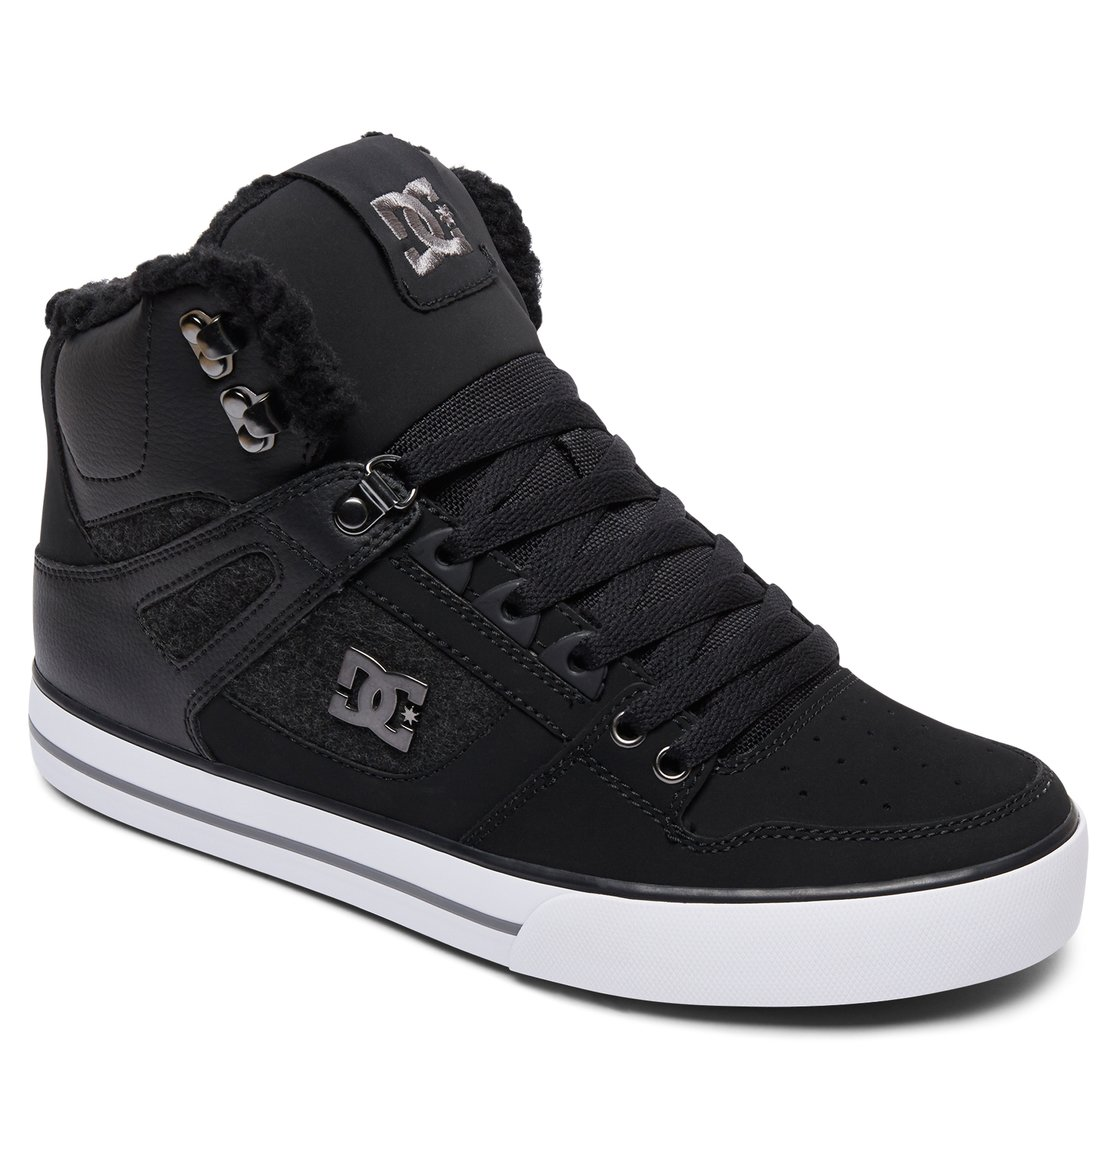 Discover the latest styles of men's high top shoes for less from your favorite brands at Famous Footwear! Find your fit today!